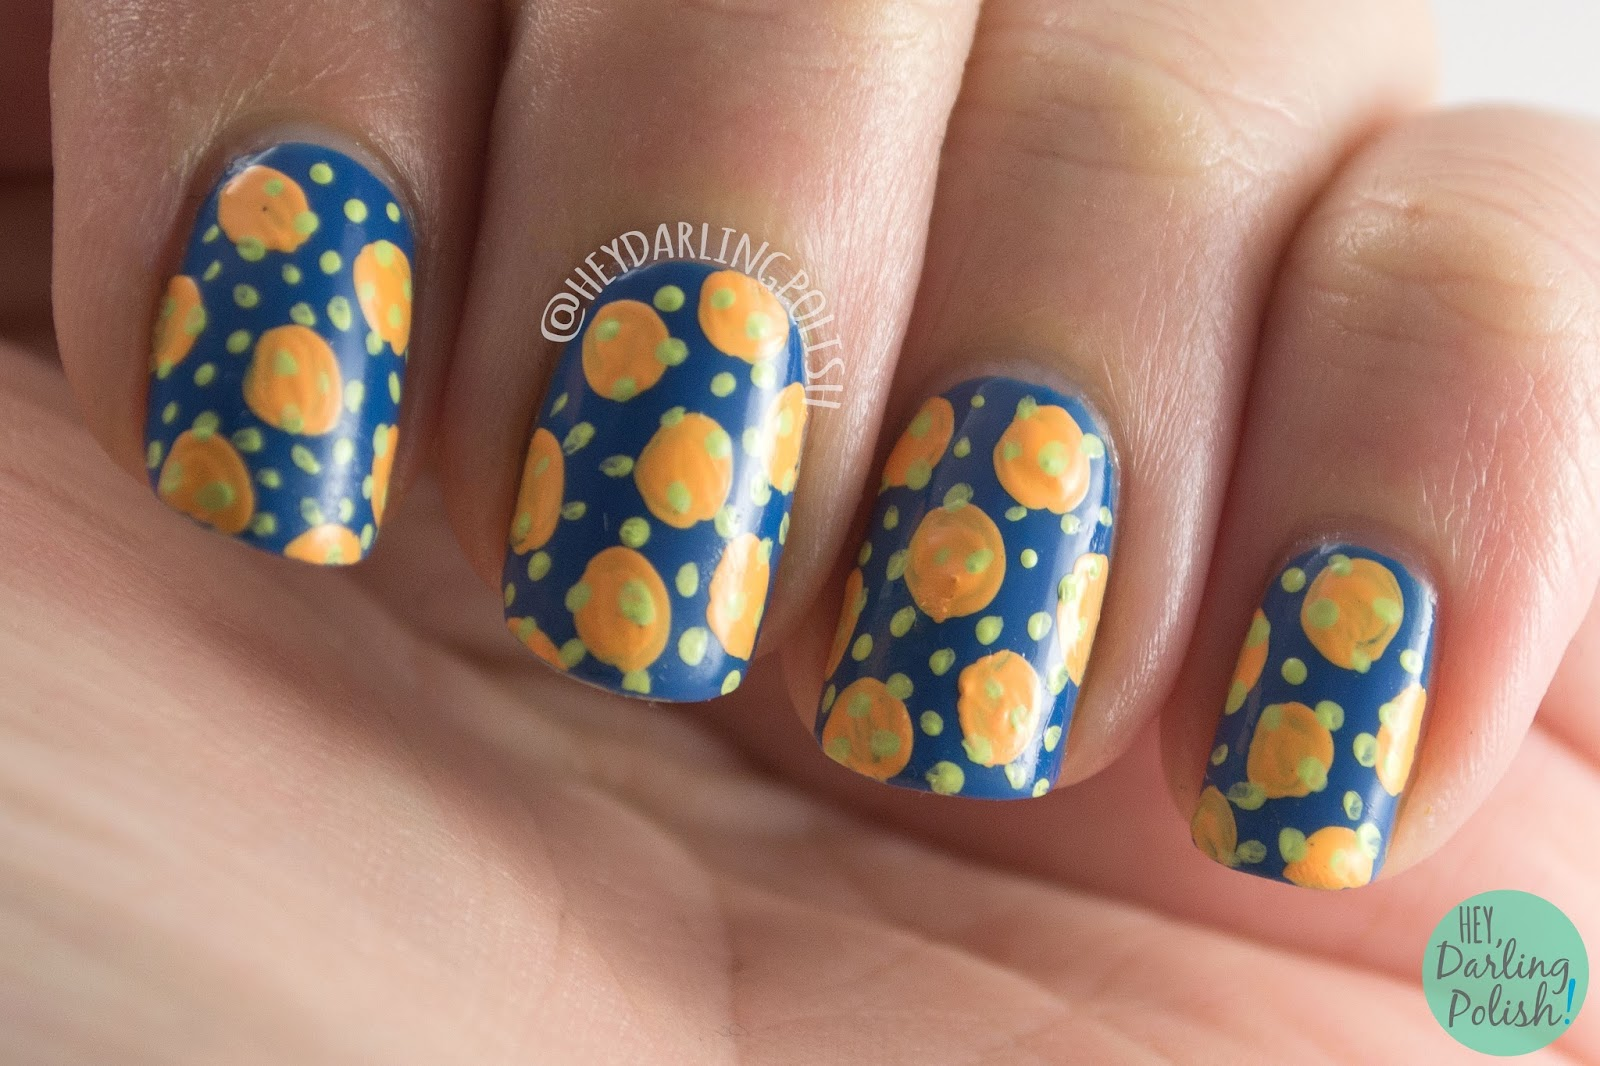 nails, nail art, nail polish, polka dots, hey darling polish, blue, contrast, complement, 2015 cnt 31 day challenge